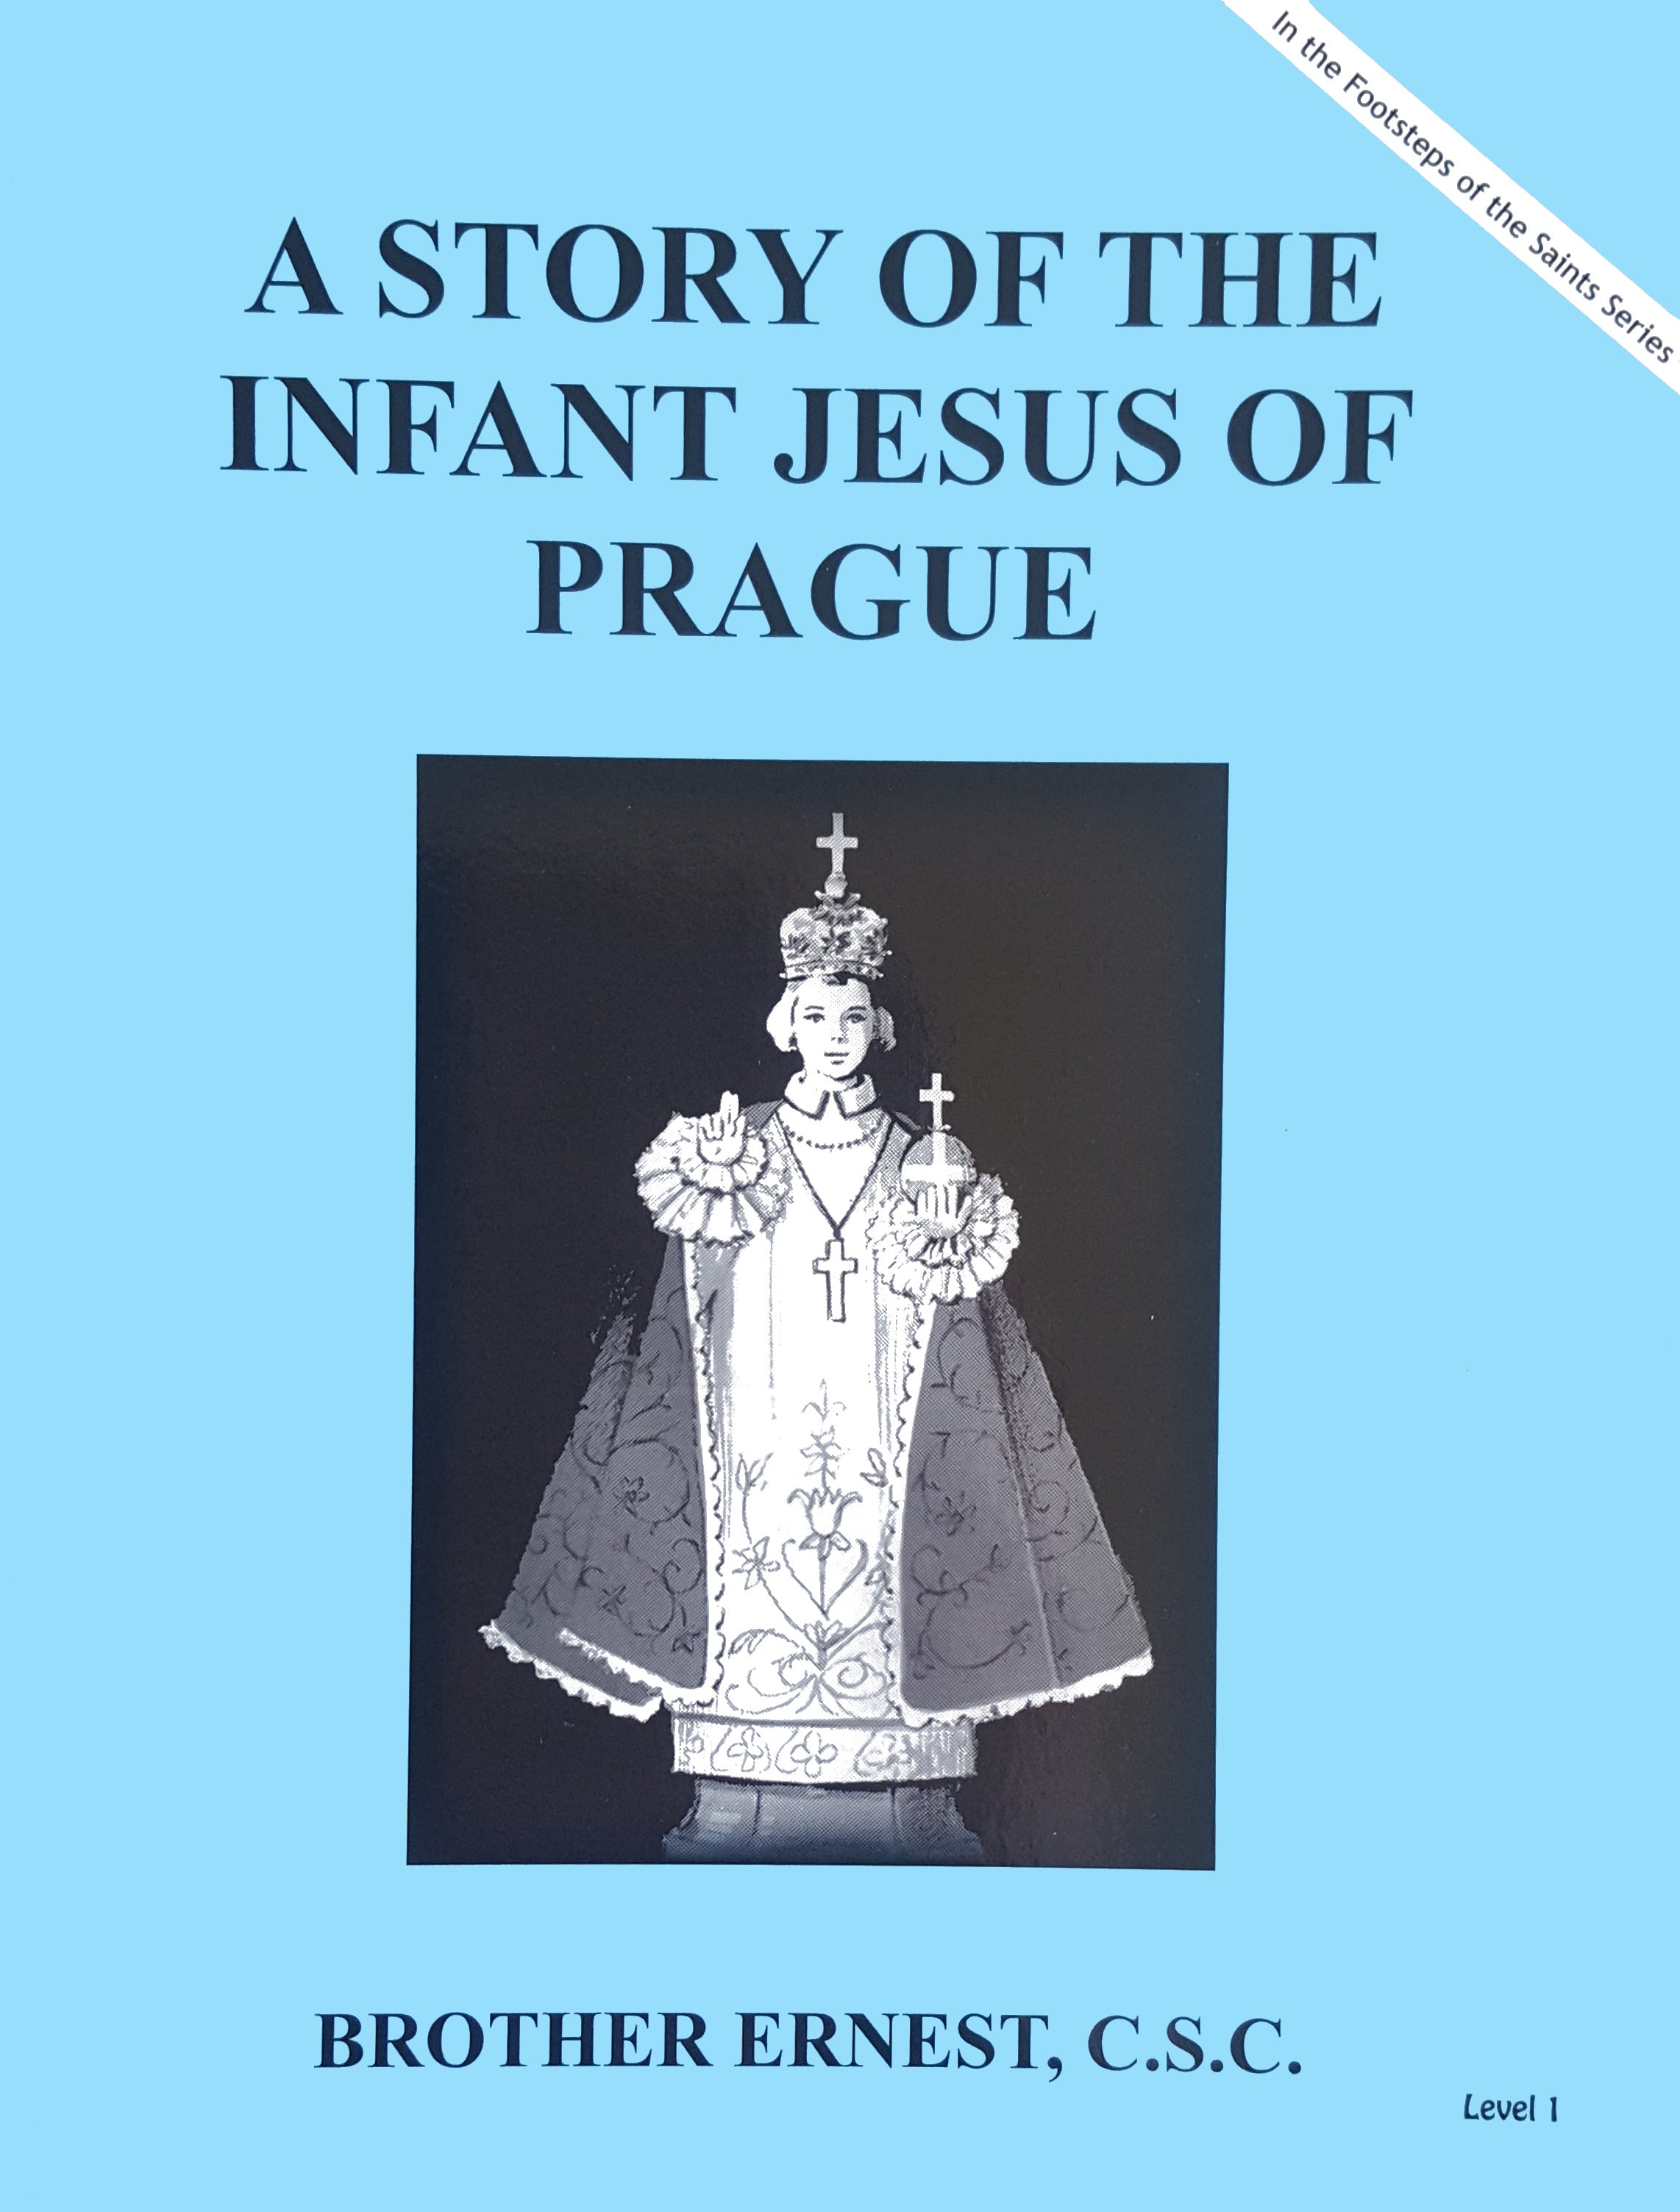 A Story Of The Infant Jesus Of Prague - ABCatholic